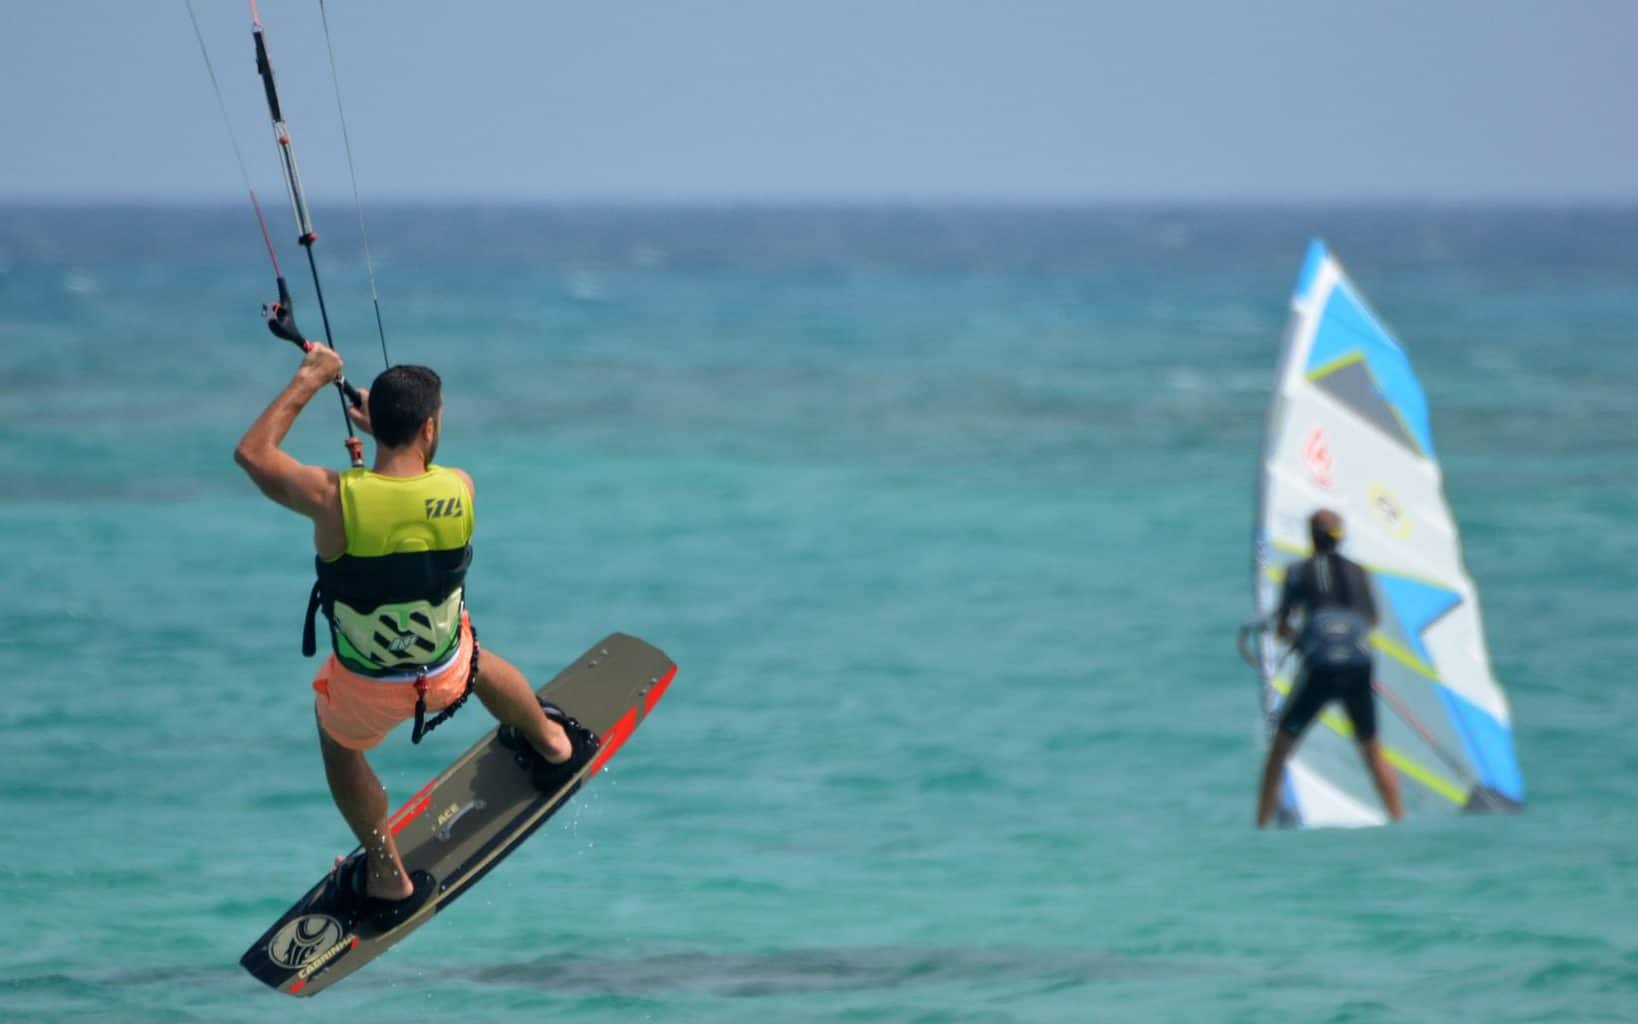 windsurfing faster than kitesurfing